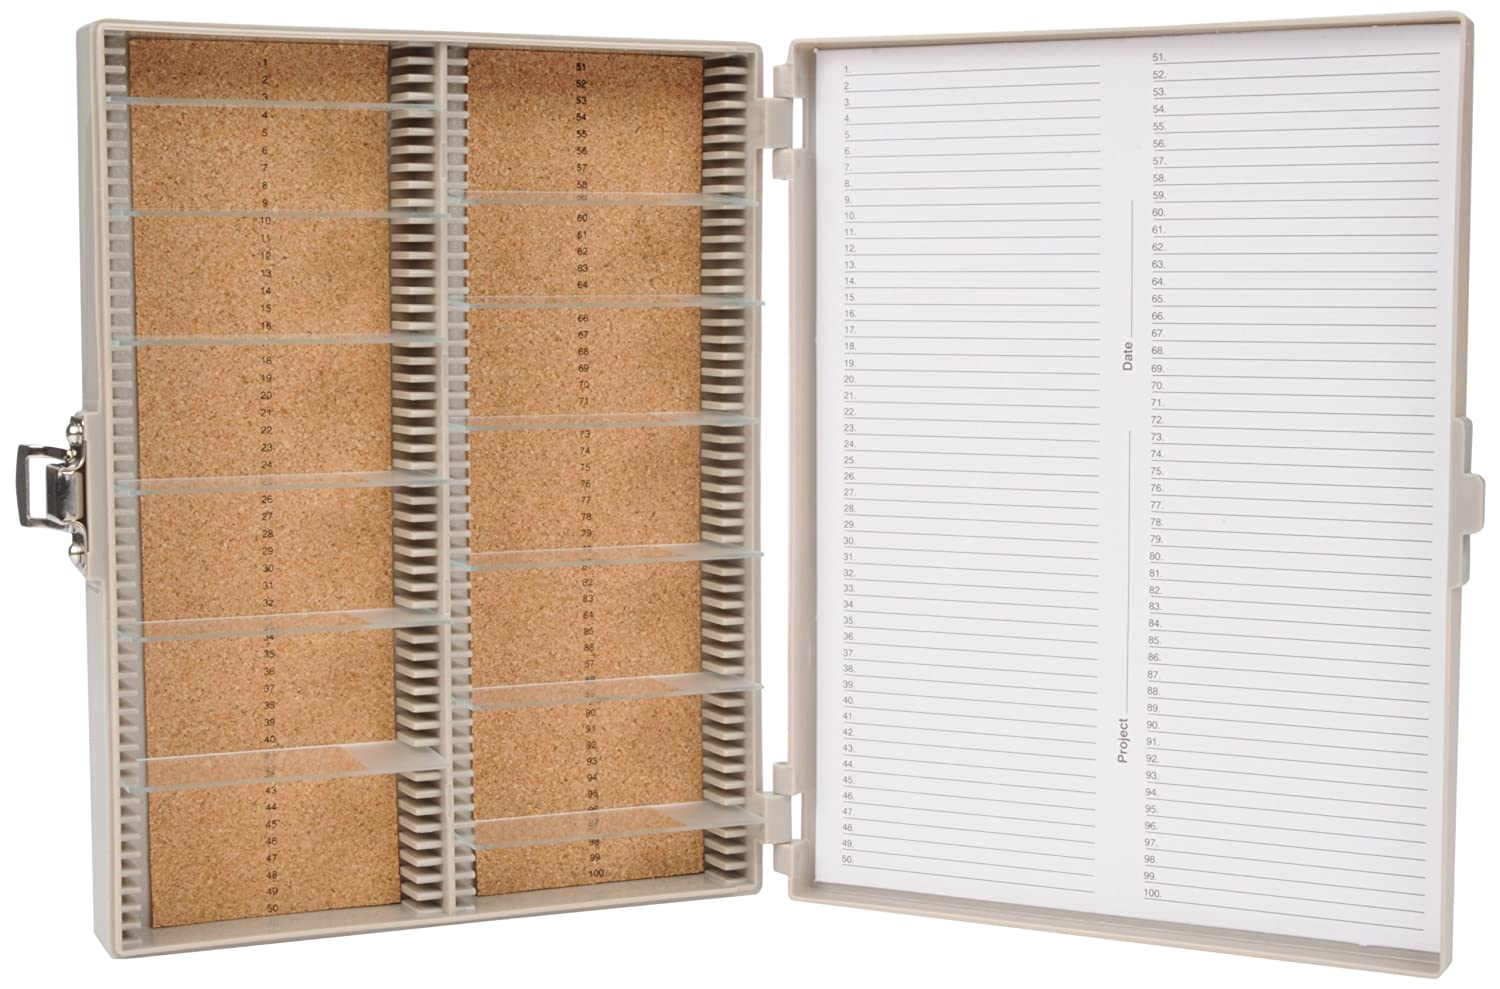 Heathrow Scientific HD15994F Microscope Slide Box, Cork Lined, 100 Place, 208 mm Length x 175 mm Width x 34 mm Height, Gray HS15994F